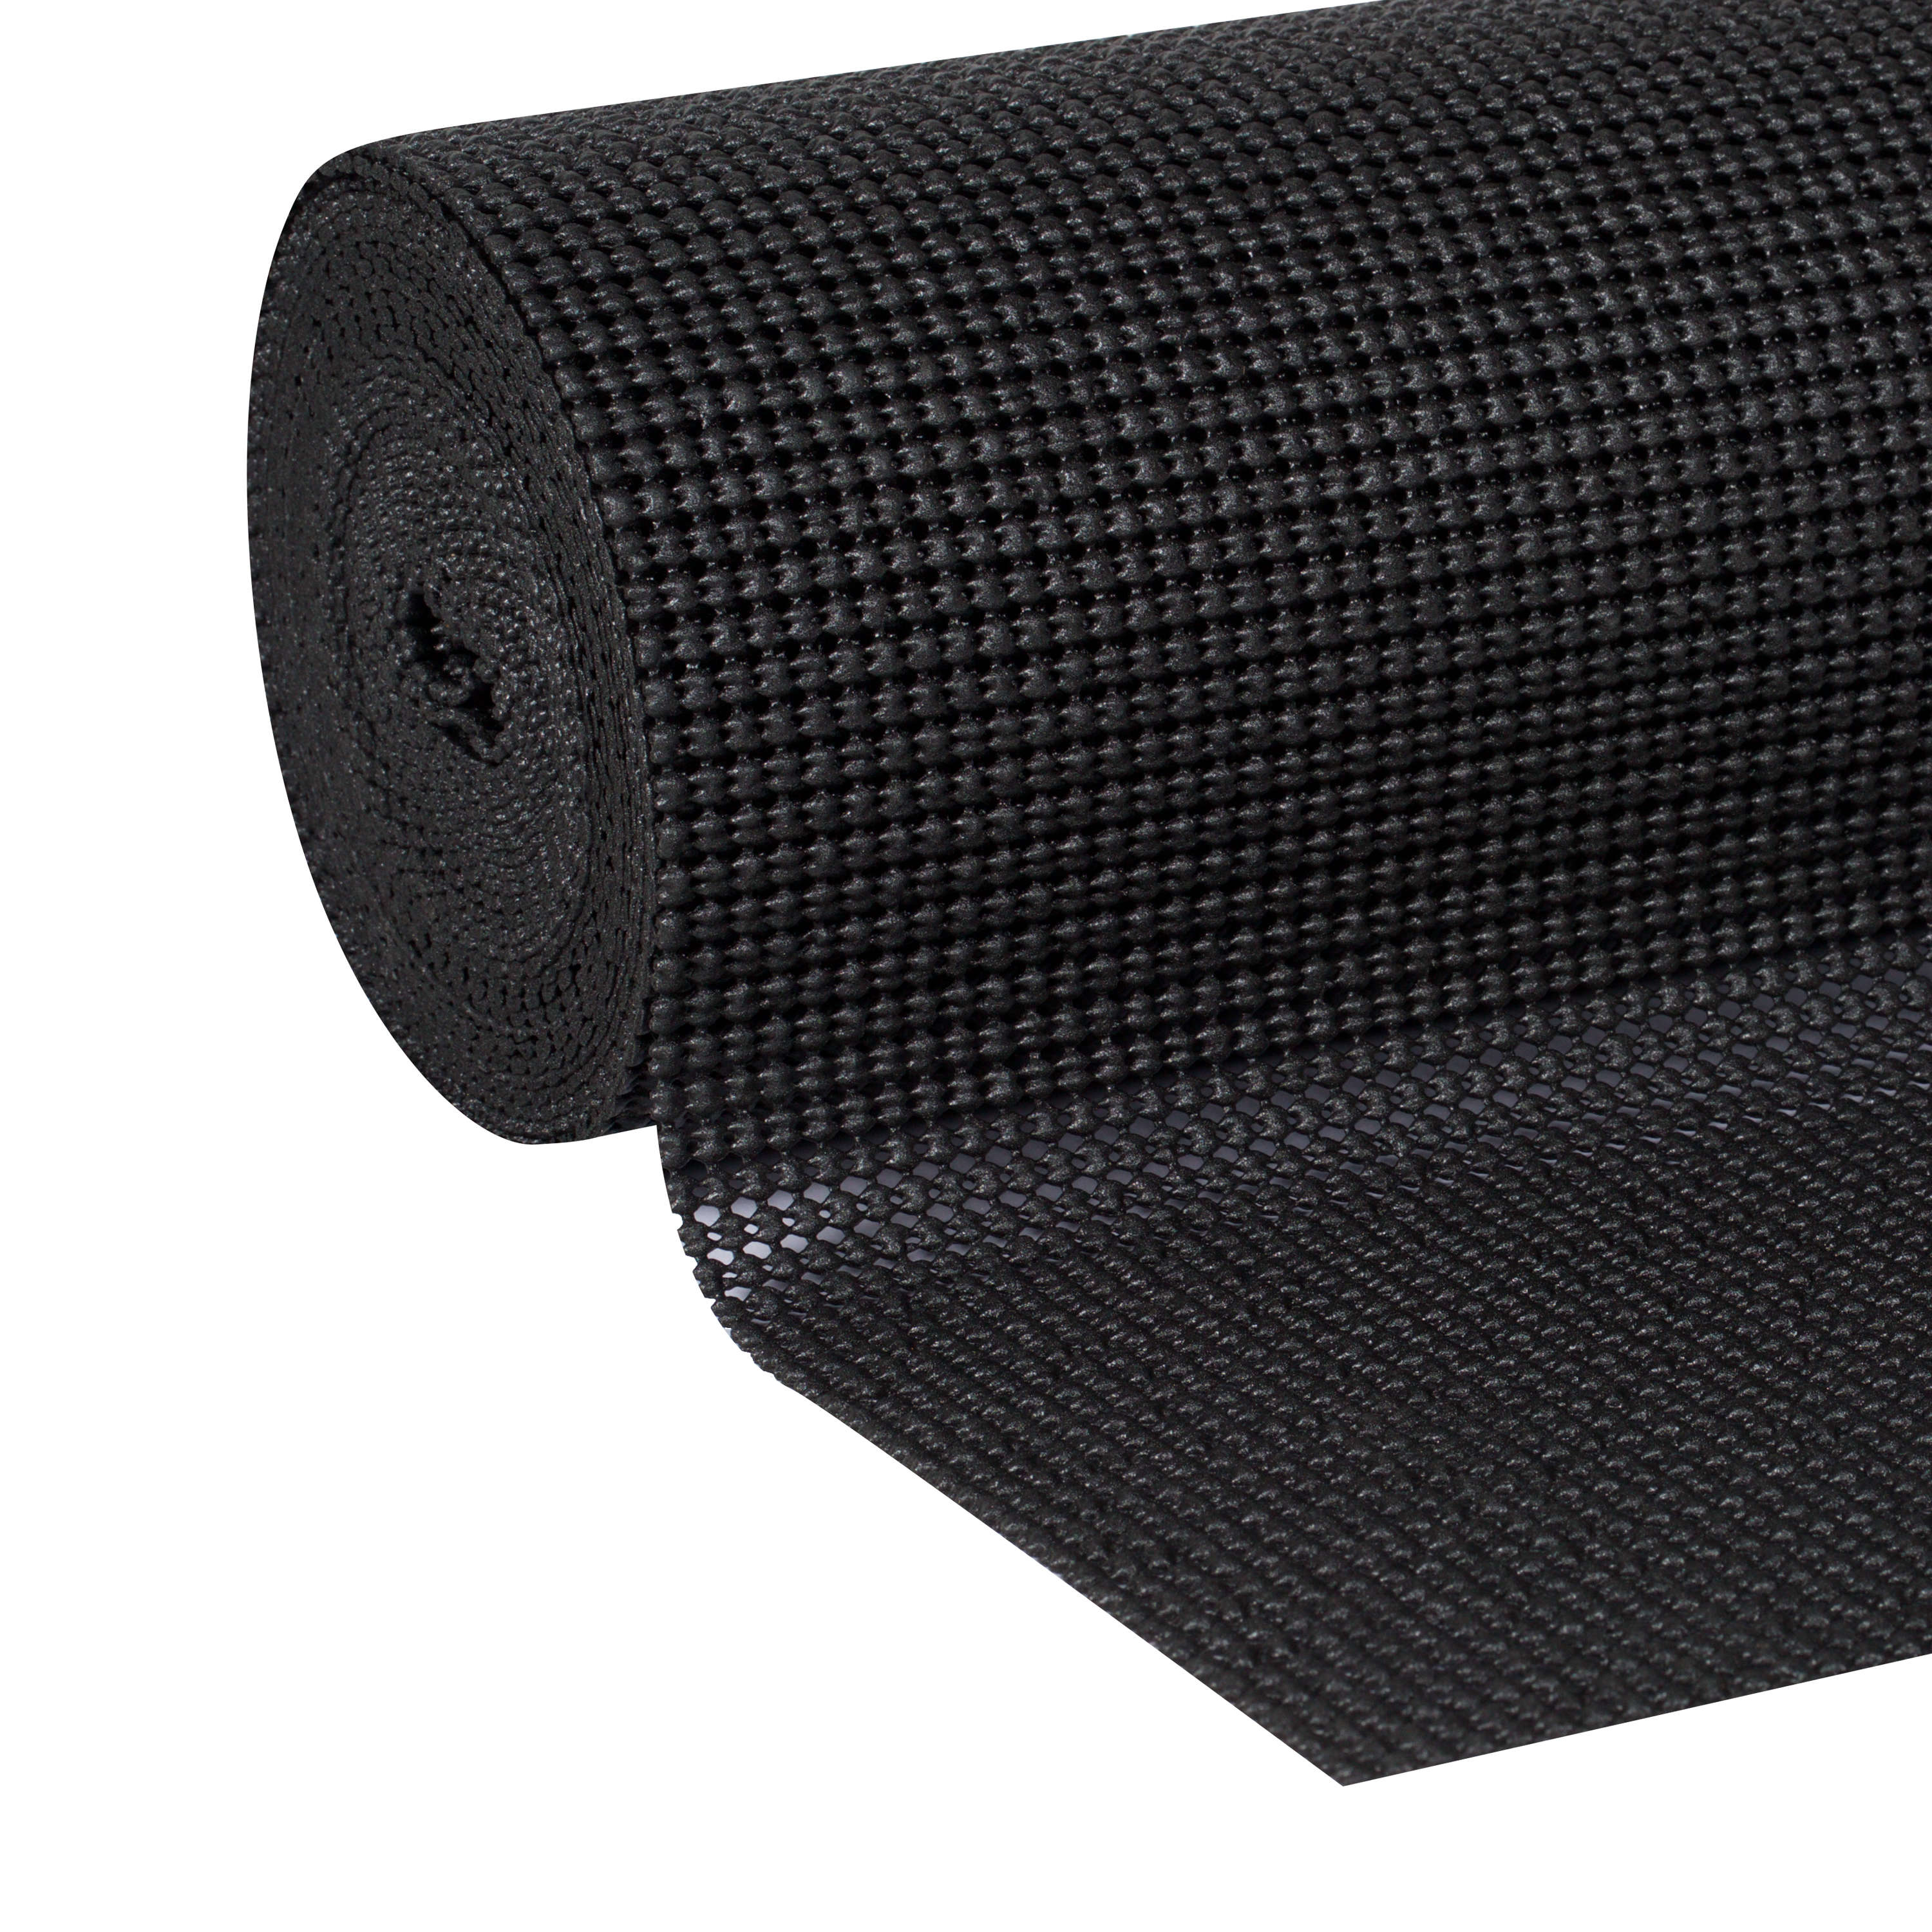 Duck Brand Select Grip Shelf Liner, 12 In. x 20 Ft., Black